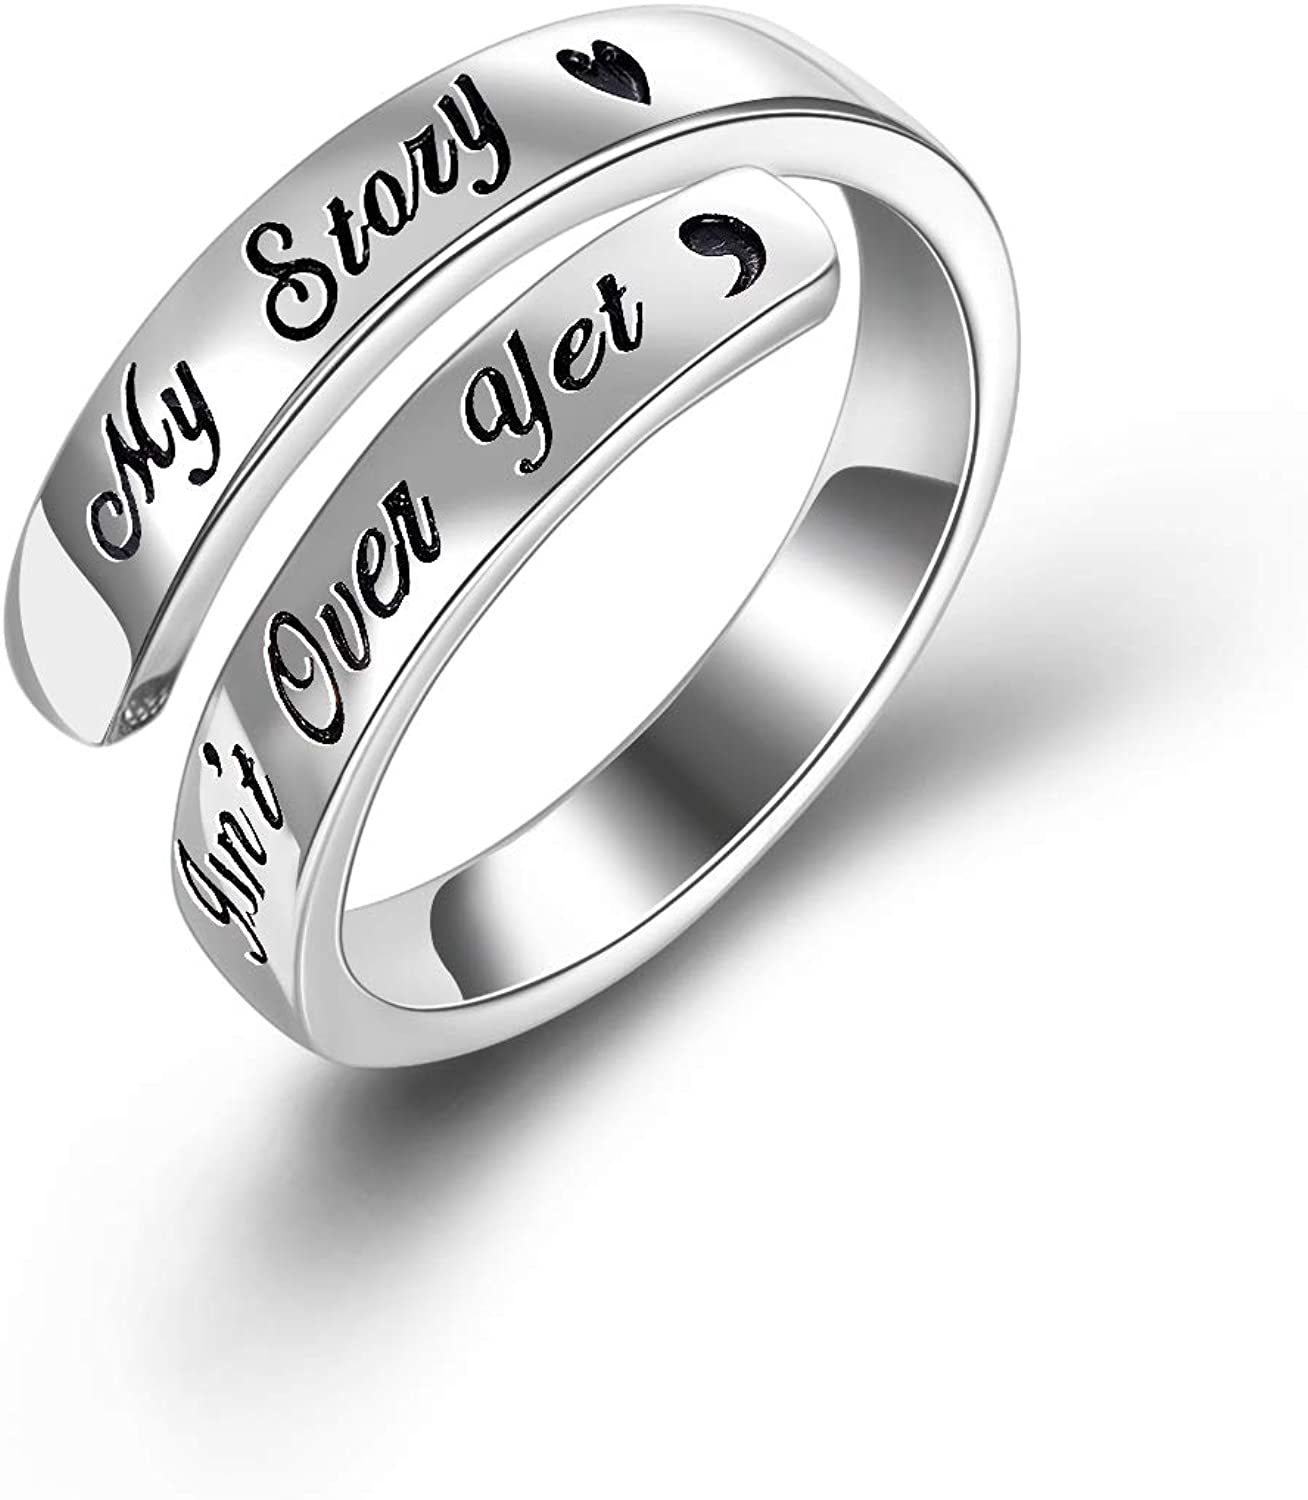 POPKIMI 925 Rare Sterling Silver Ring My Max 46% OFF Over Yet Simple Isn't Story